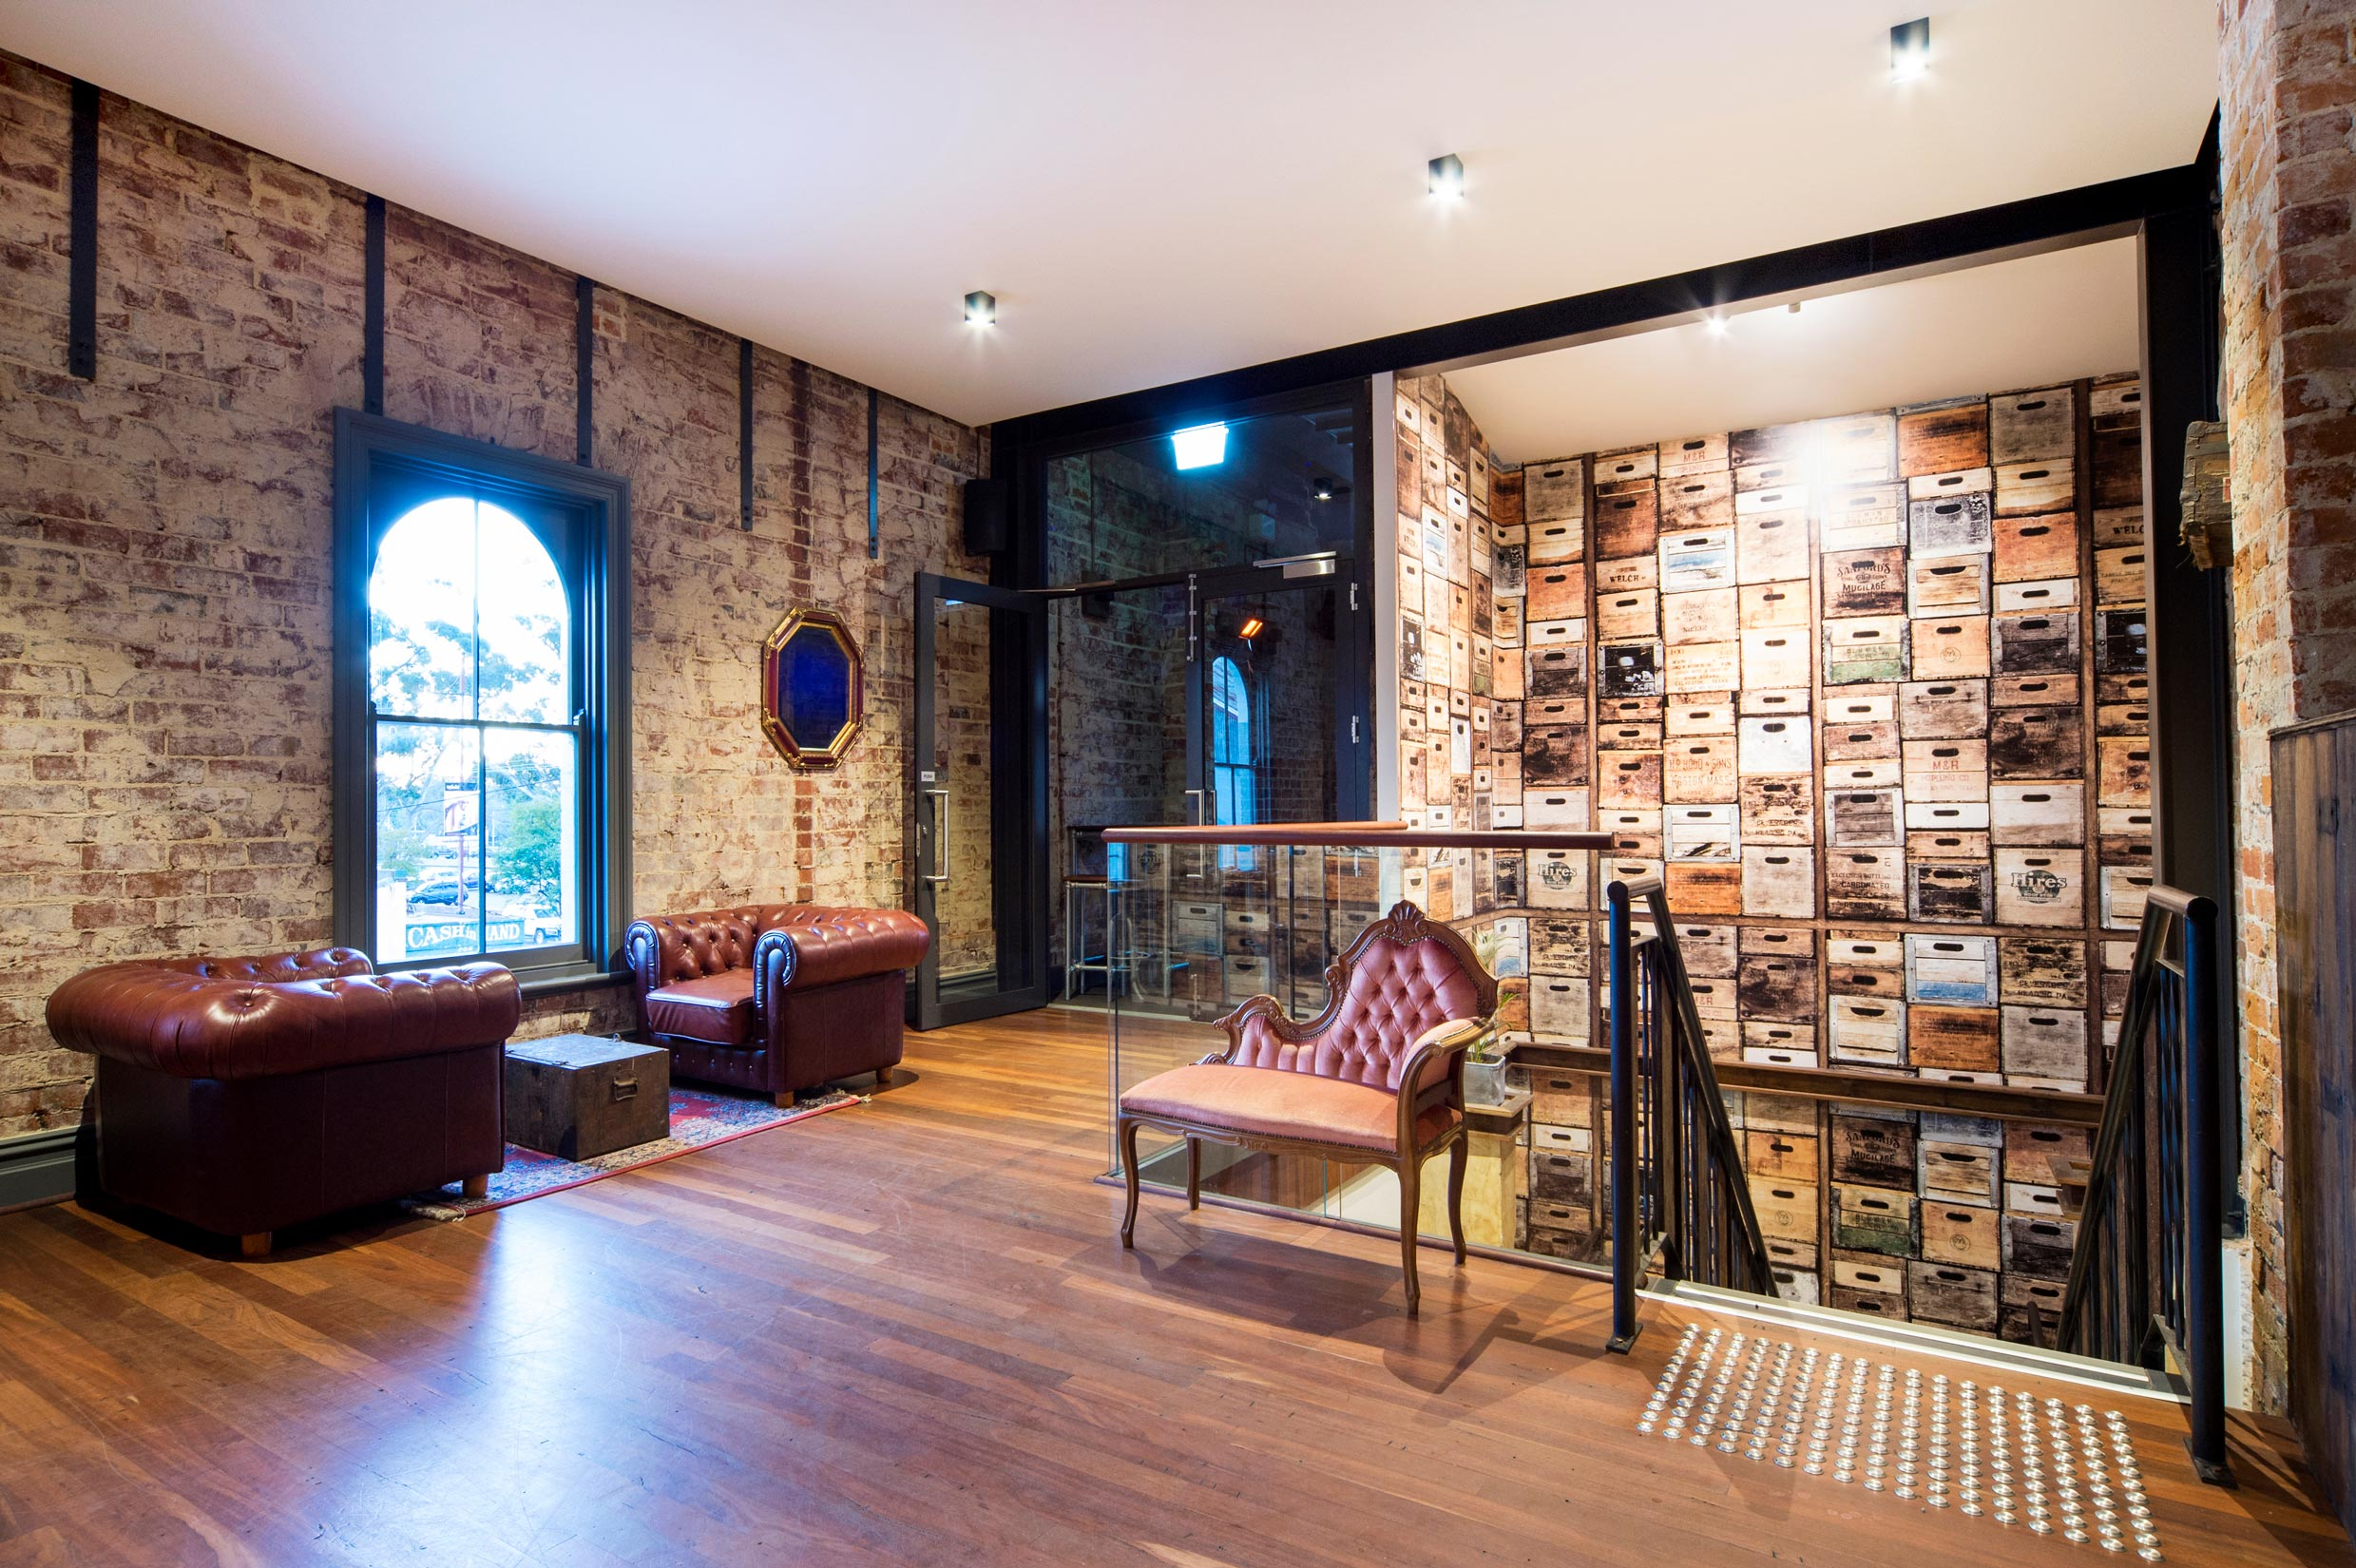 Wallpapered stairwell with leather and velvet lounges on first floor landing of the Guildford Hotel